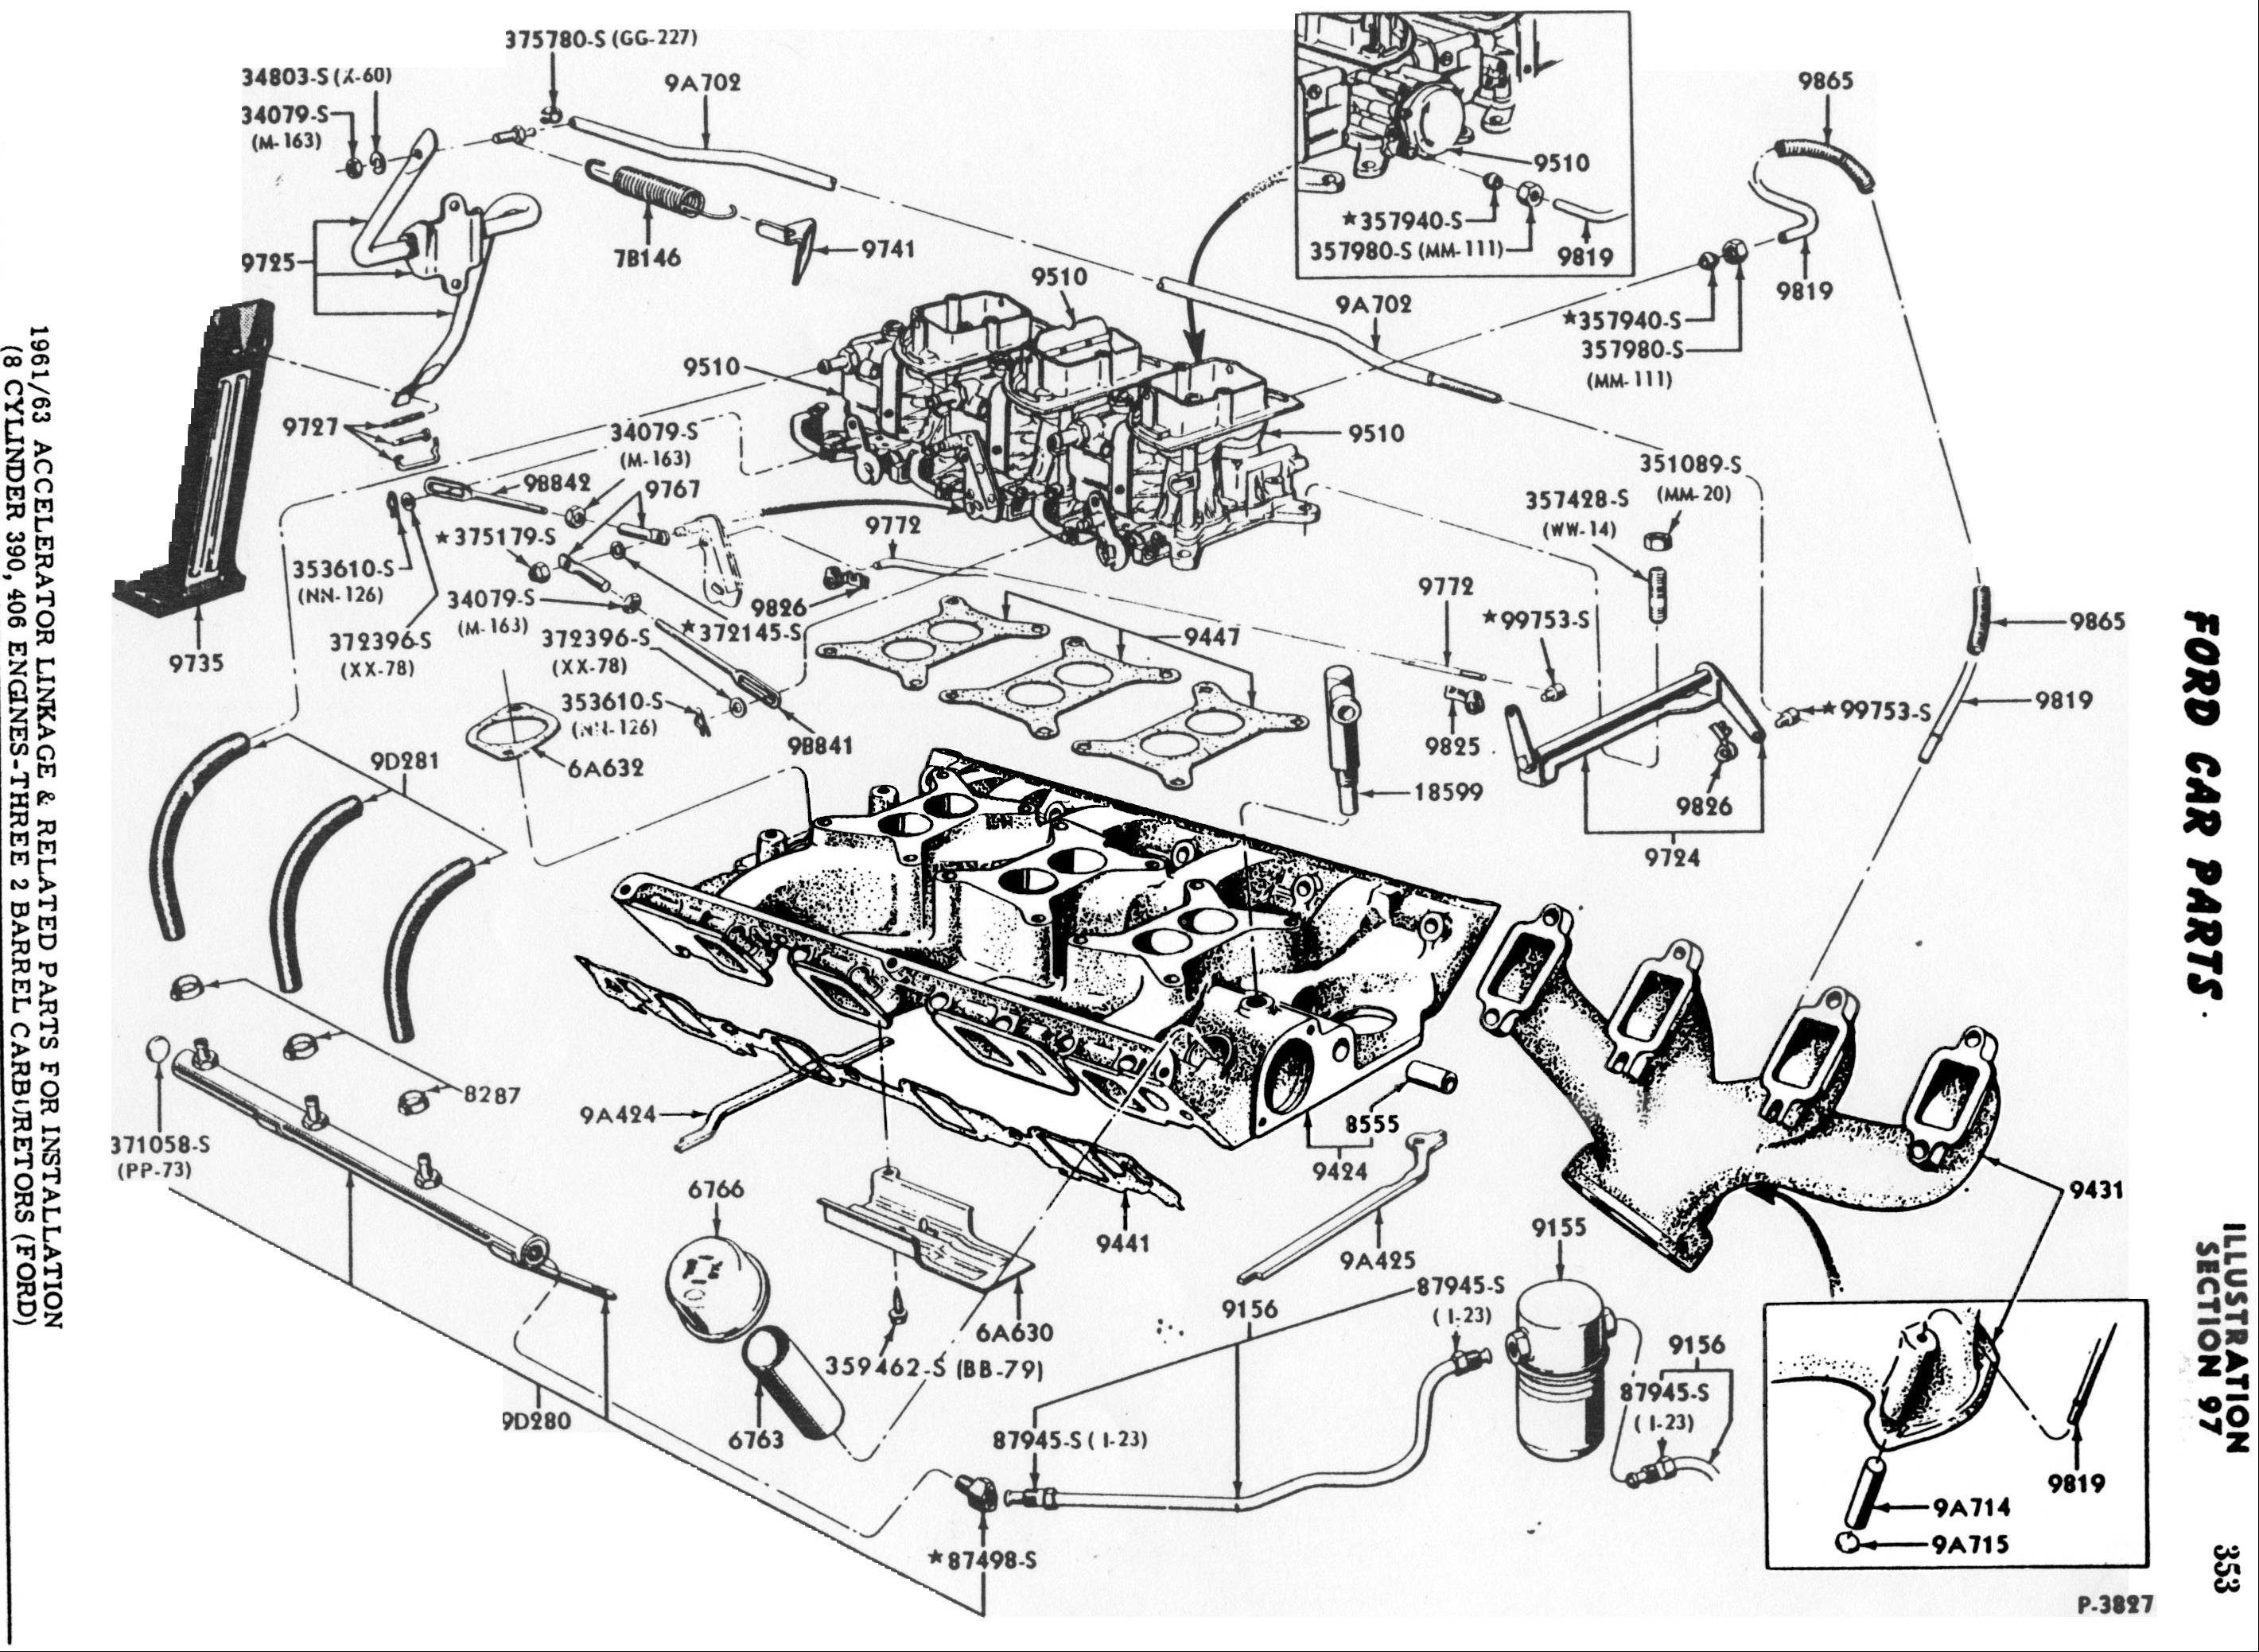 1971 mustang wiring harness replacement parts